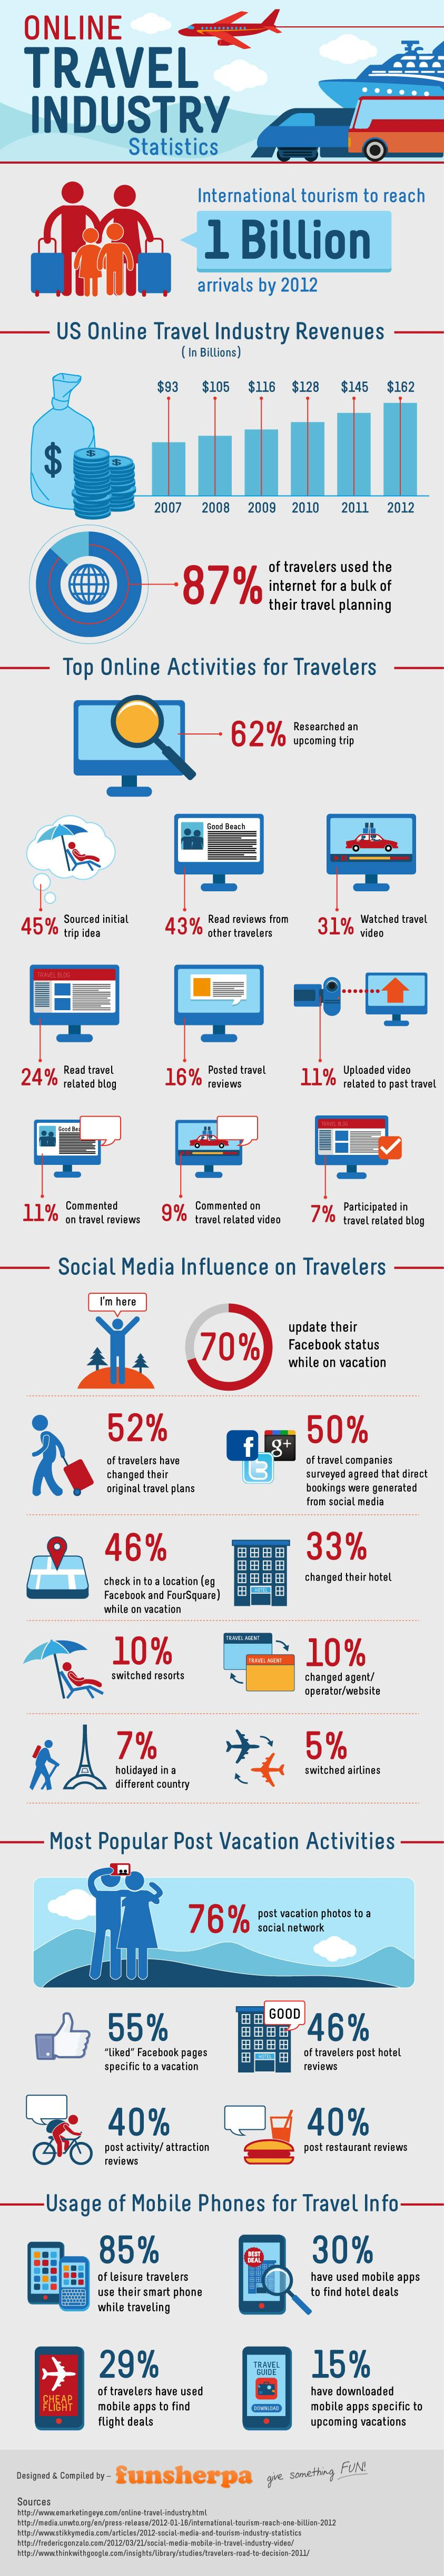 Social Media and Travel